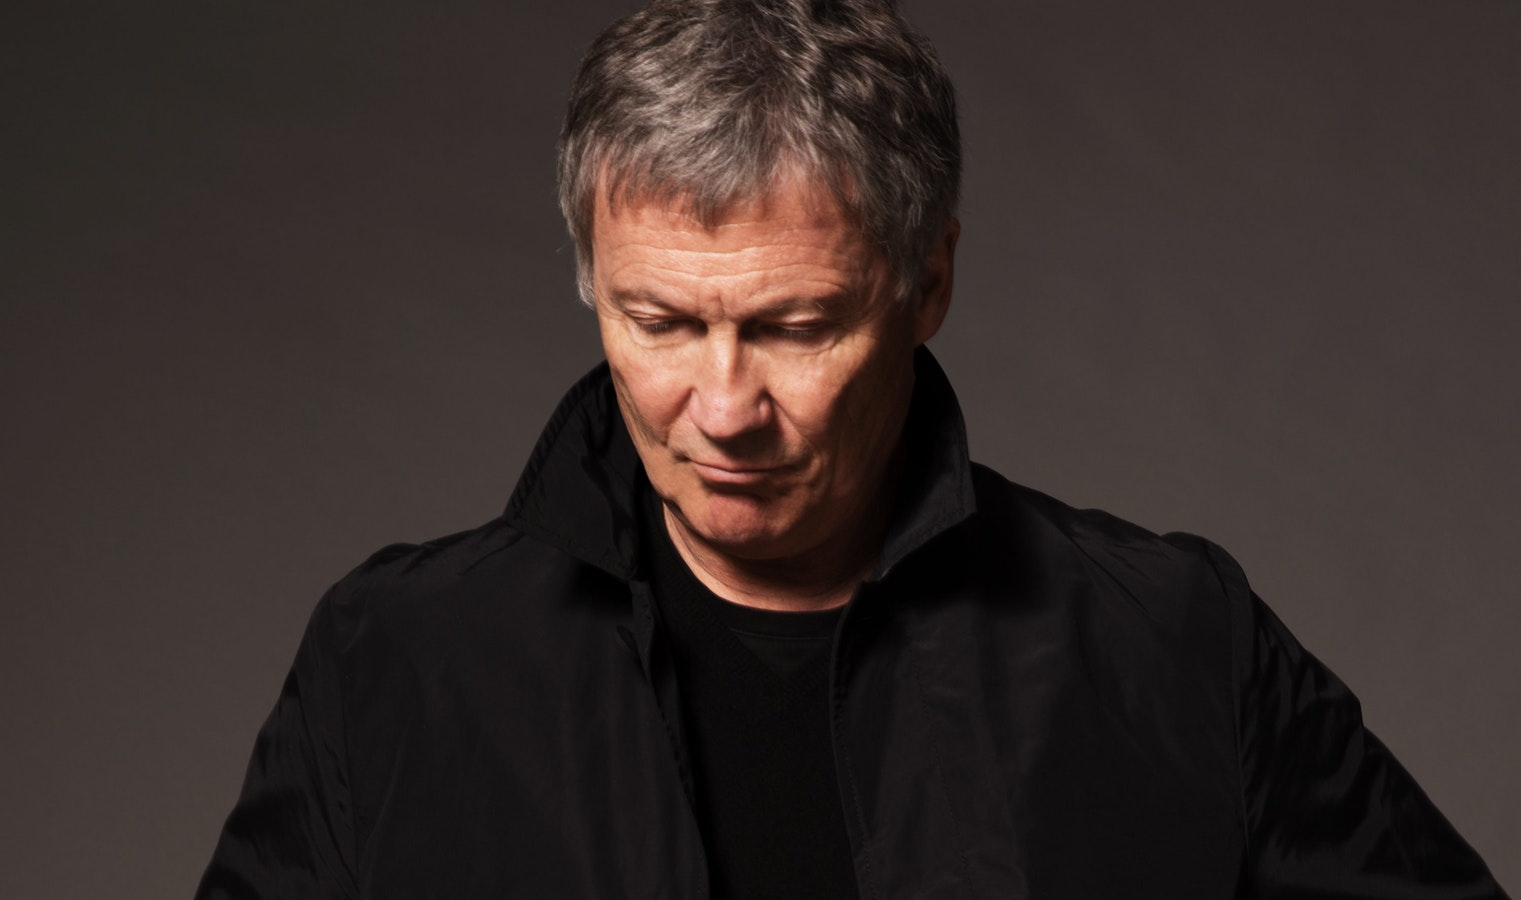 MICHAEL ROTHER PLAYS NEU! & HARMONIA & SOLO WORKS